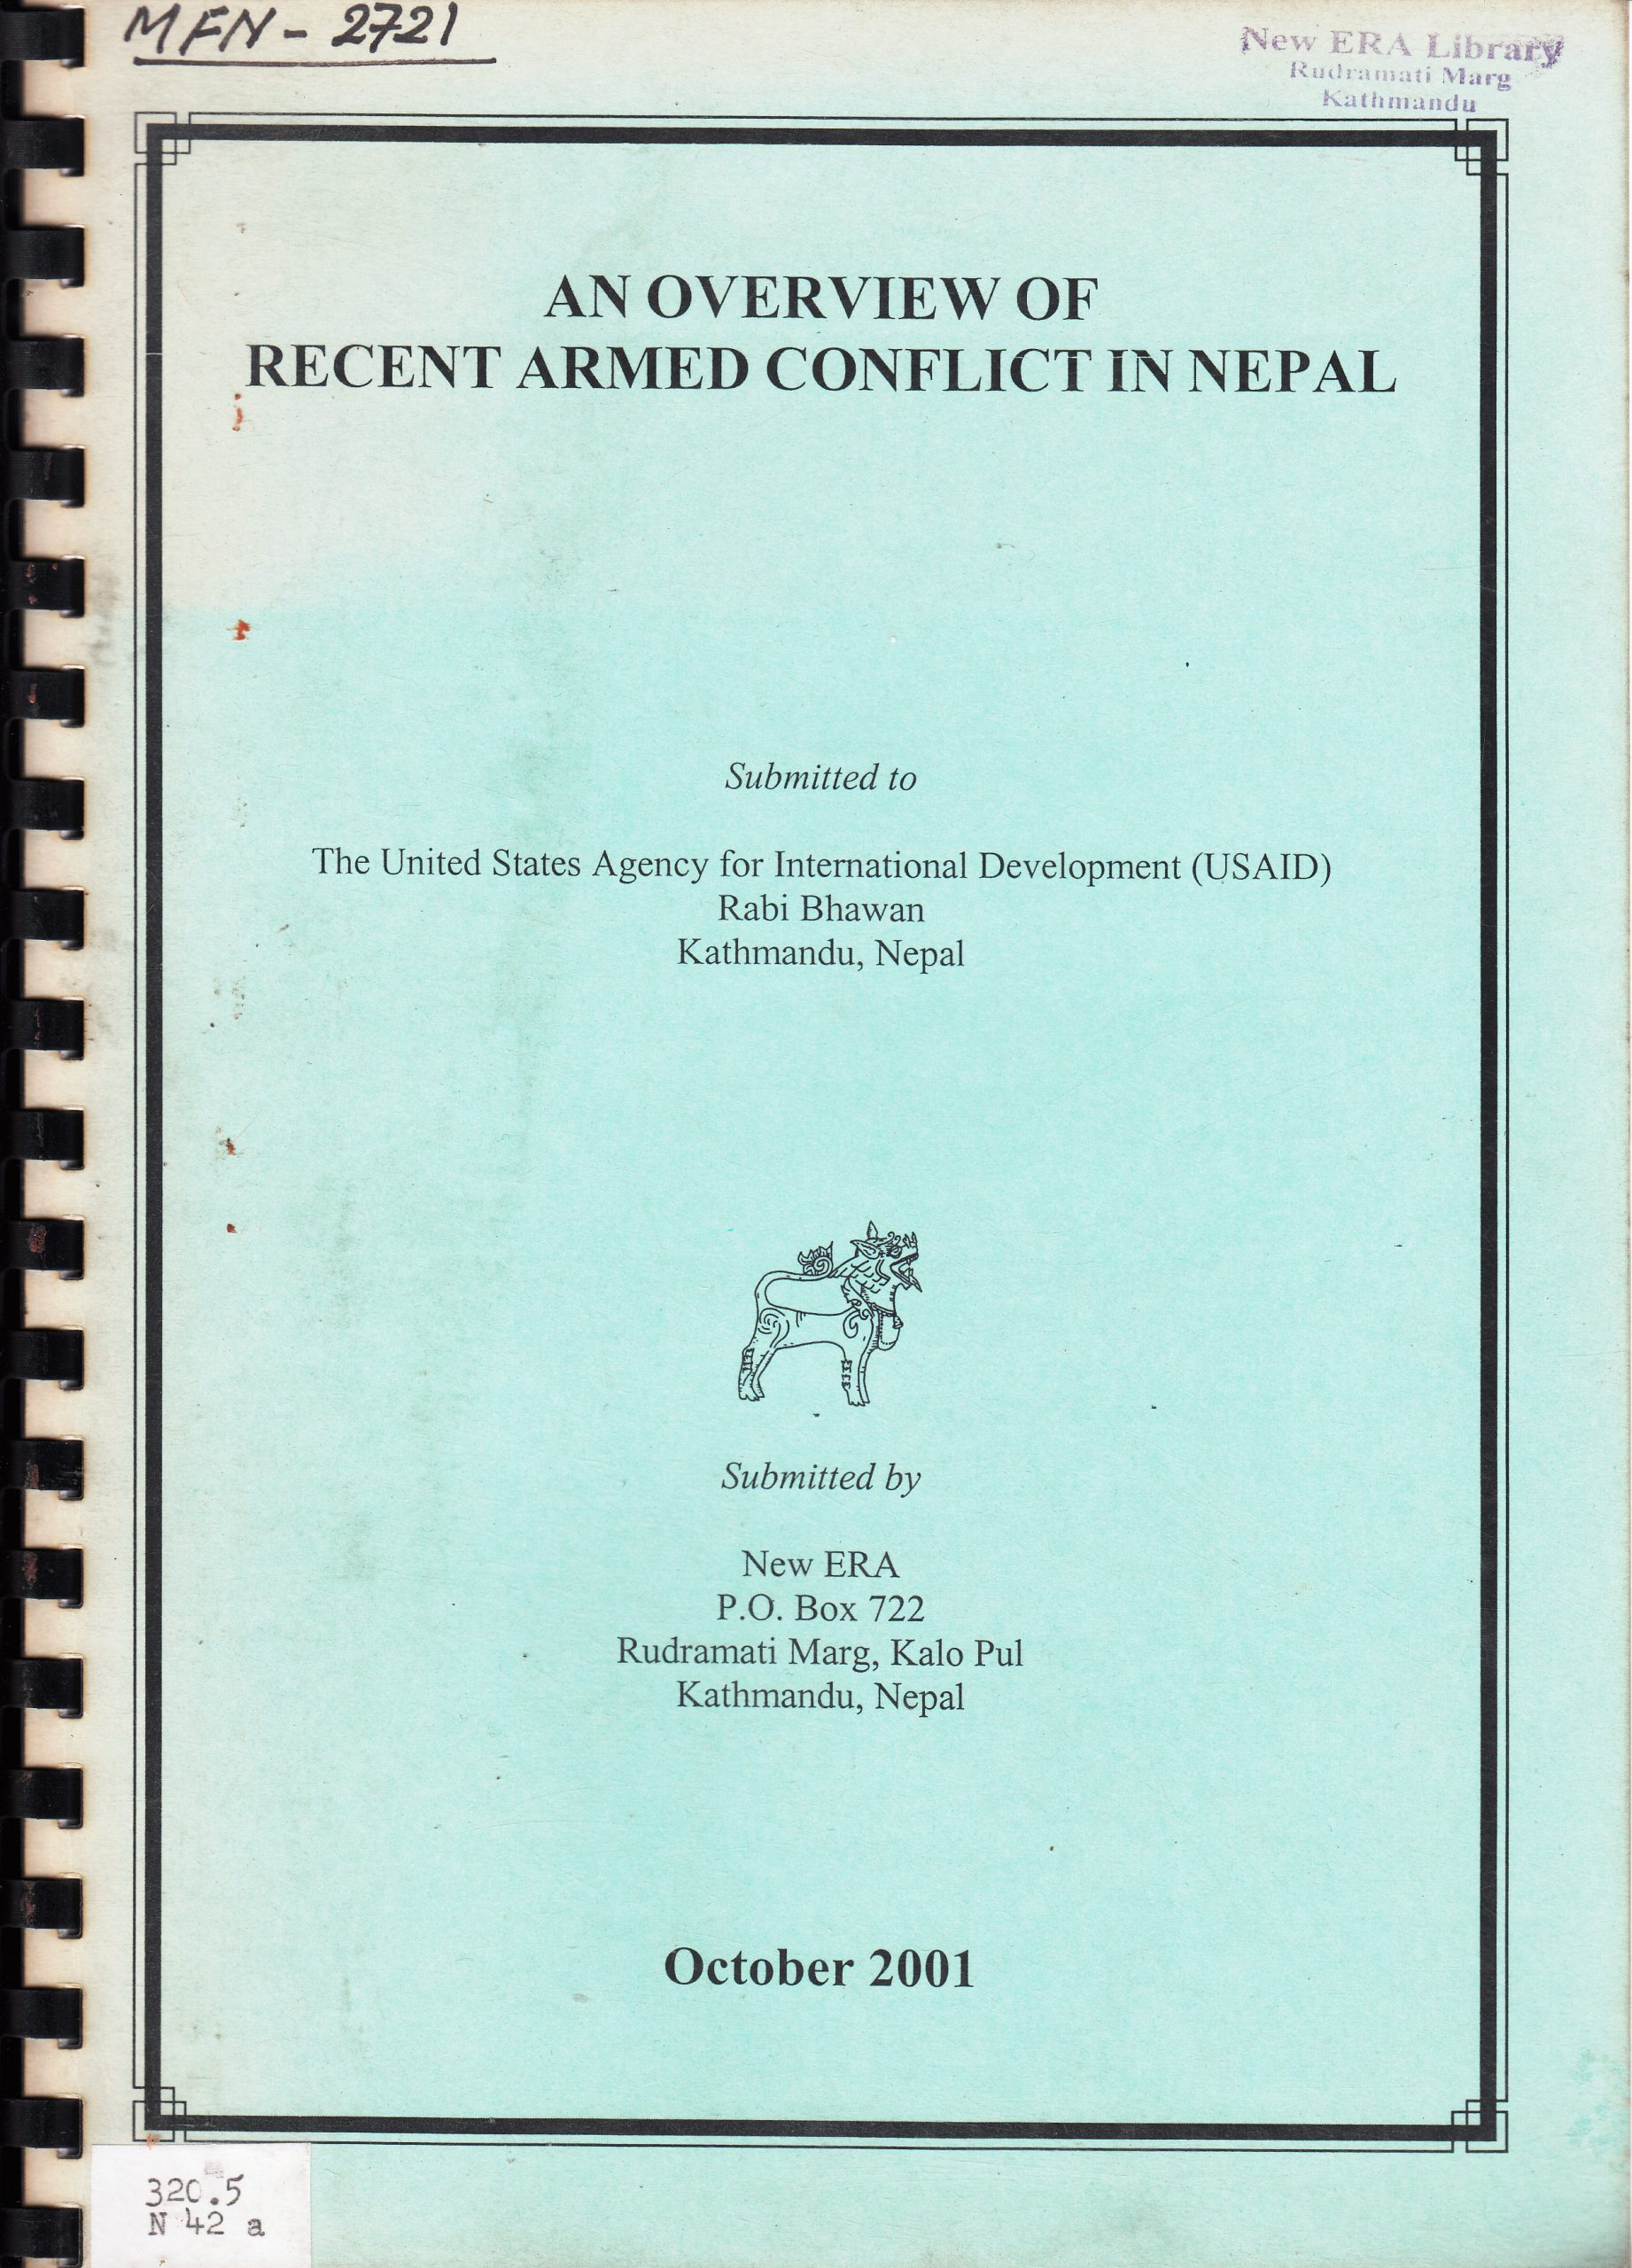 An Overview of Recent Armed Conflict in Nepal